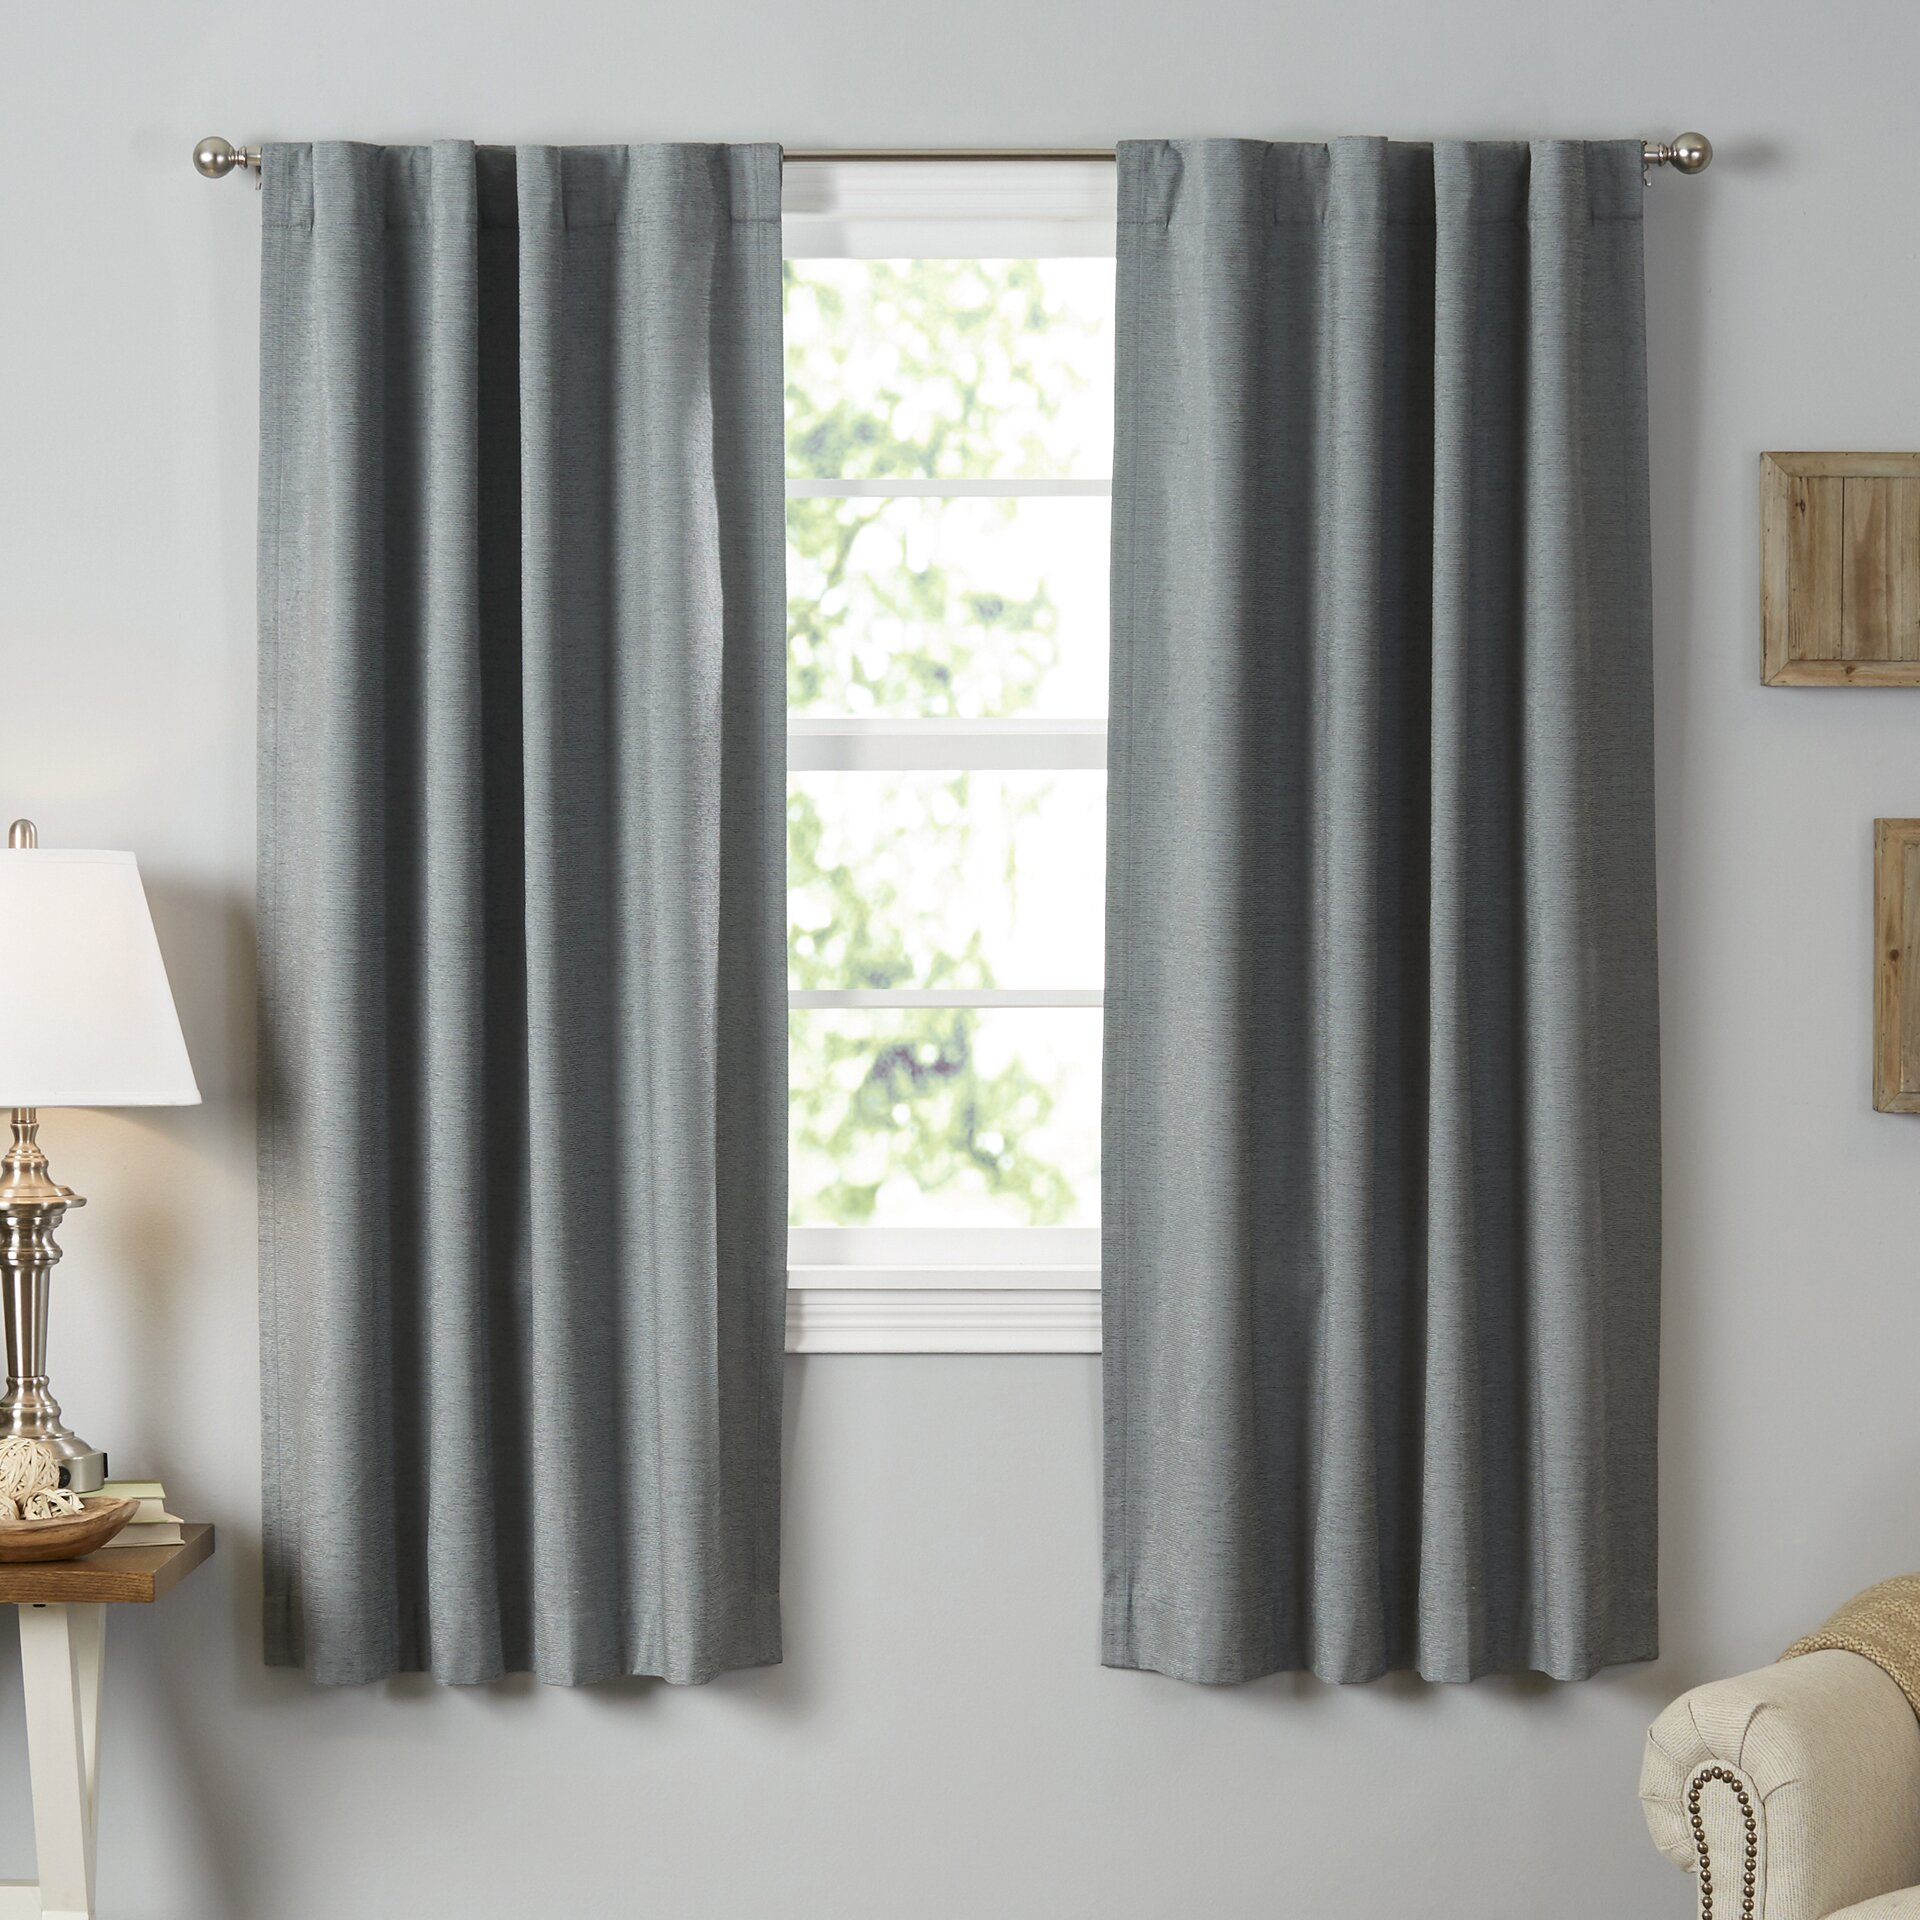 Thermal curtains grey - Beautyrest Room Darkening Blackout Thermal Single Curtain Panel